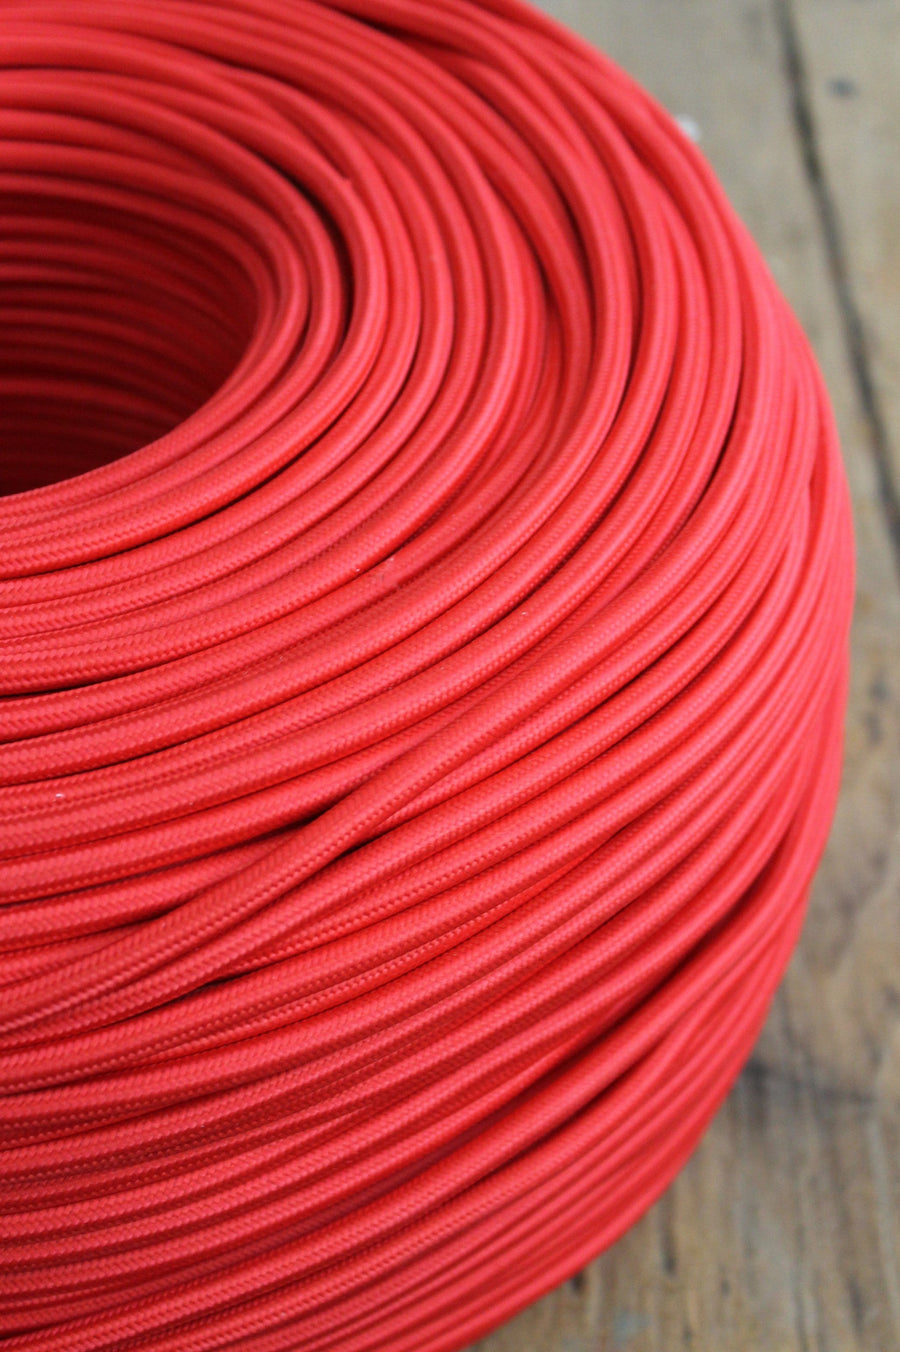 Red braided light cord